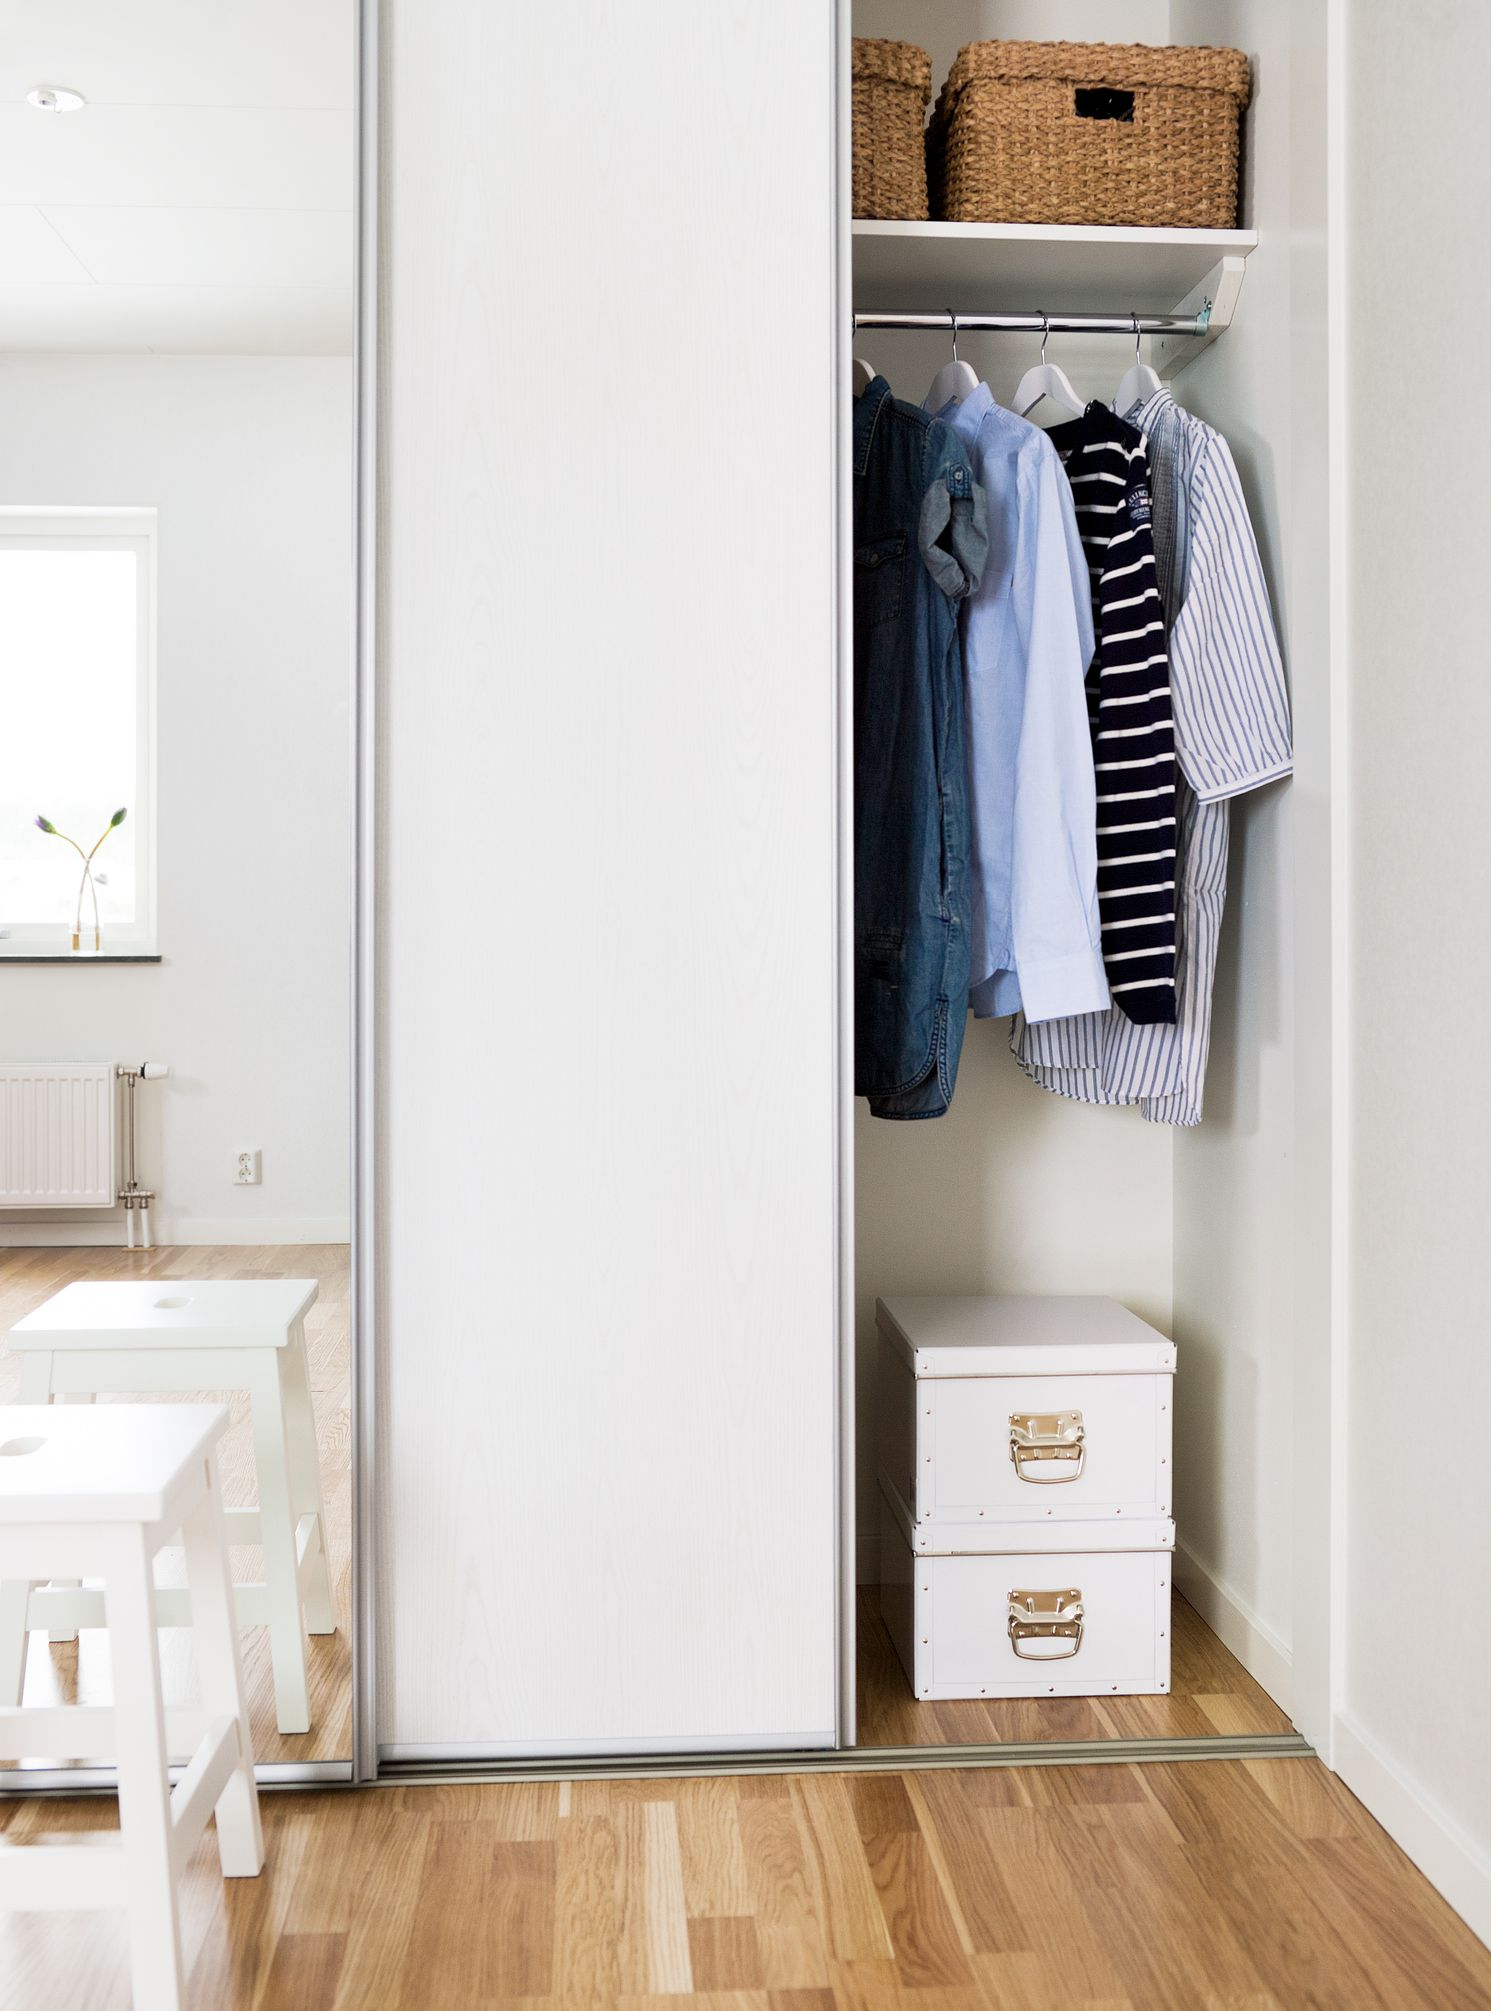 Create More Storage Space In Your Home